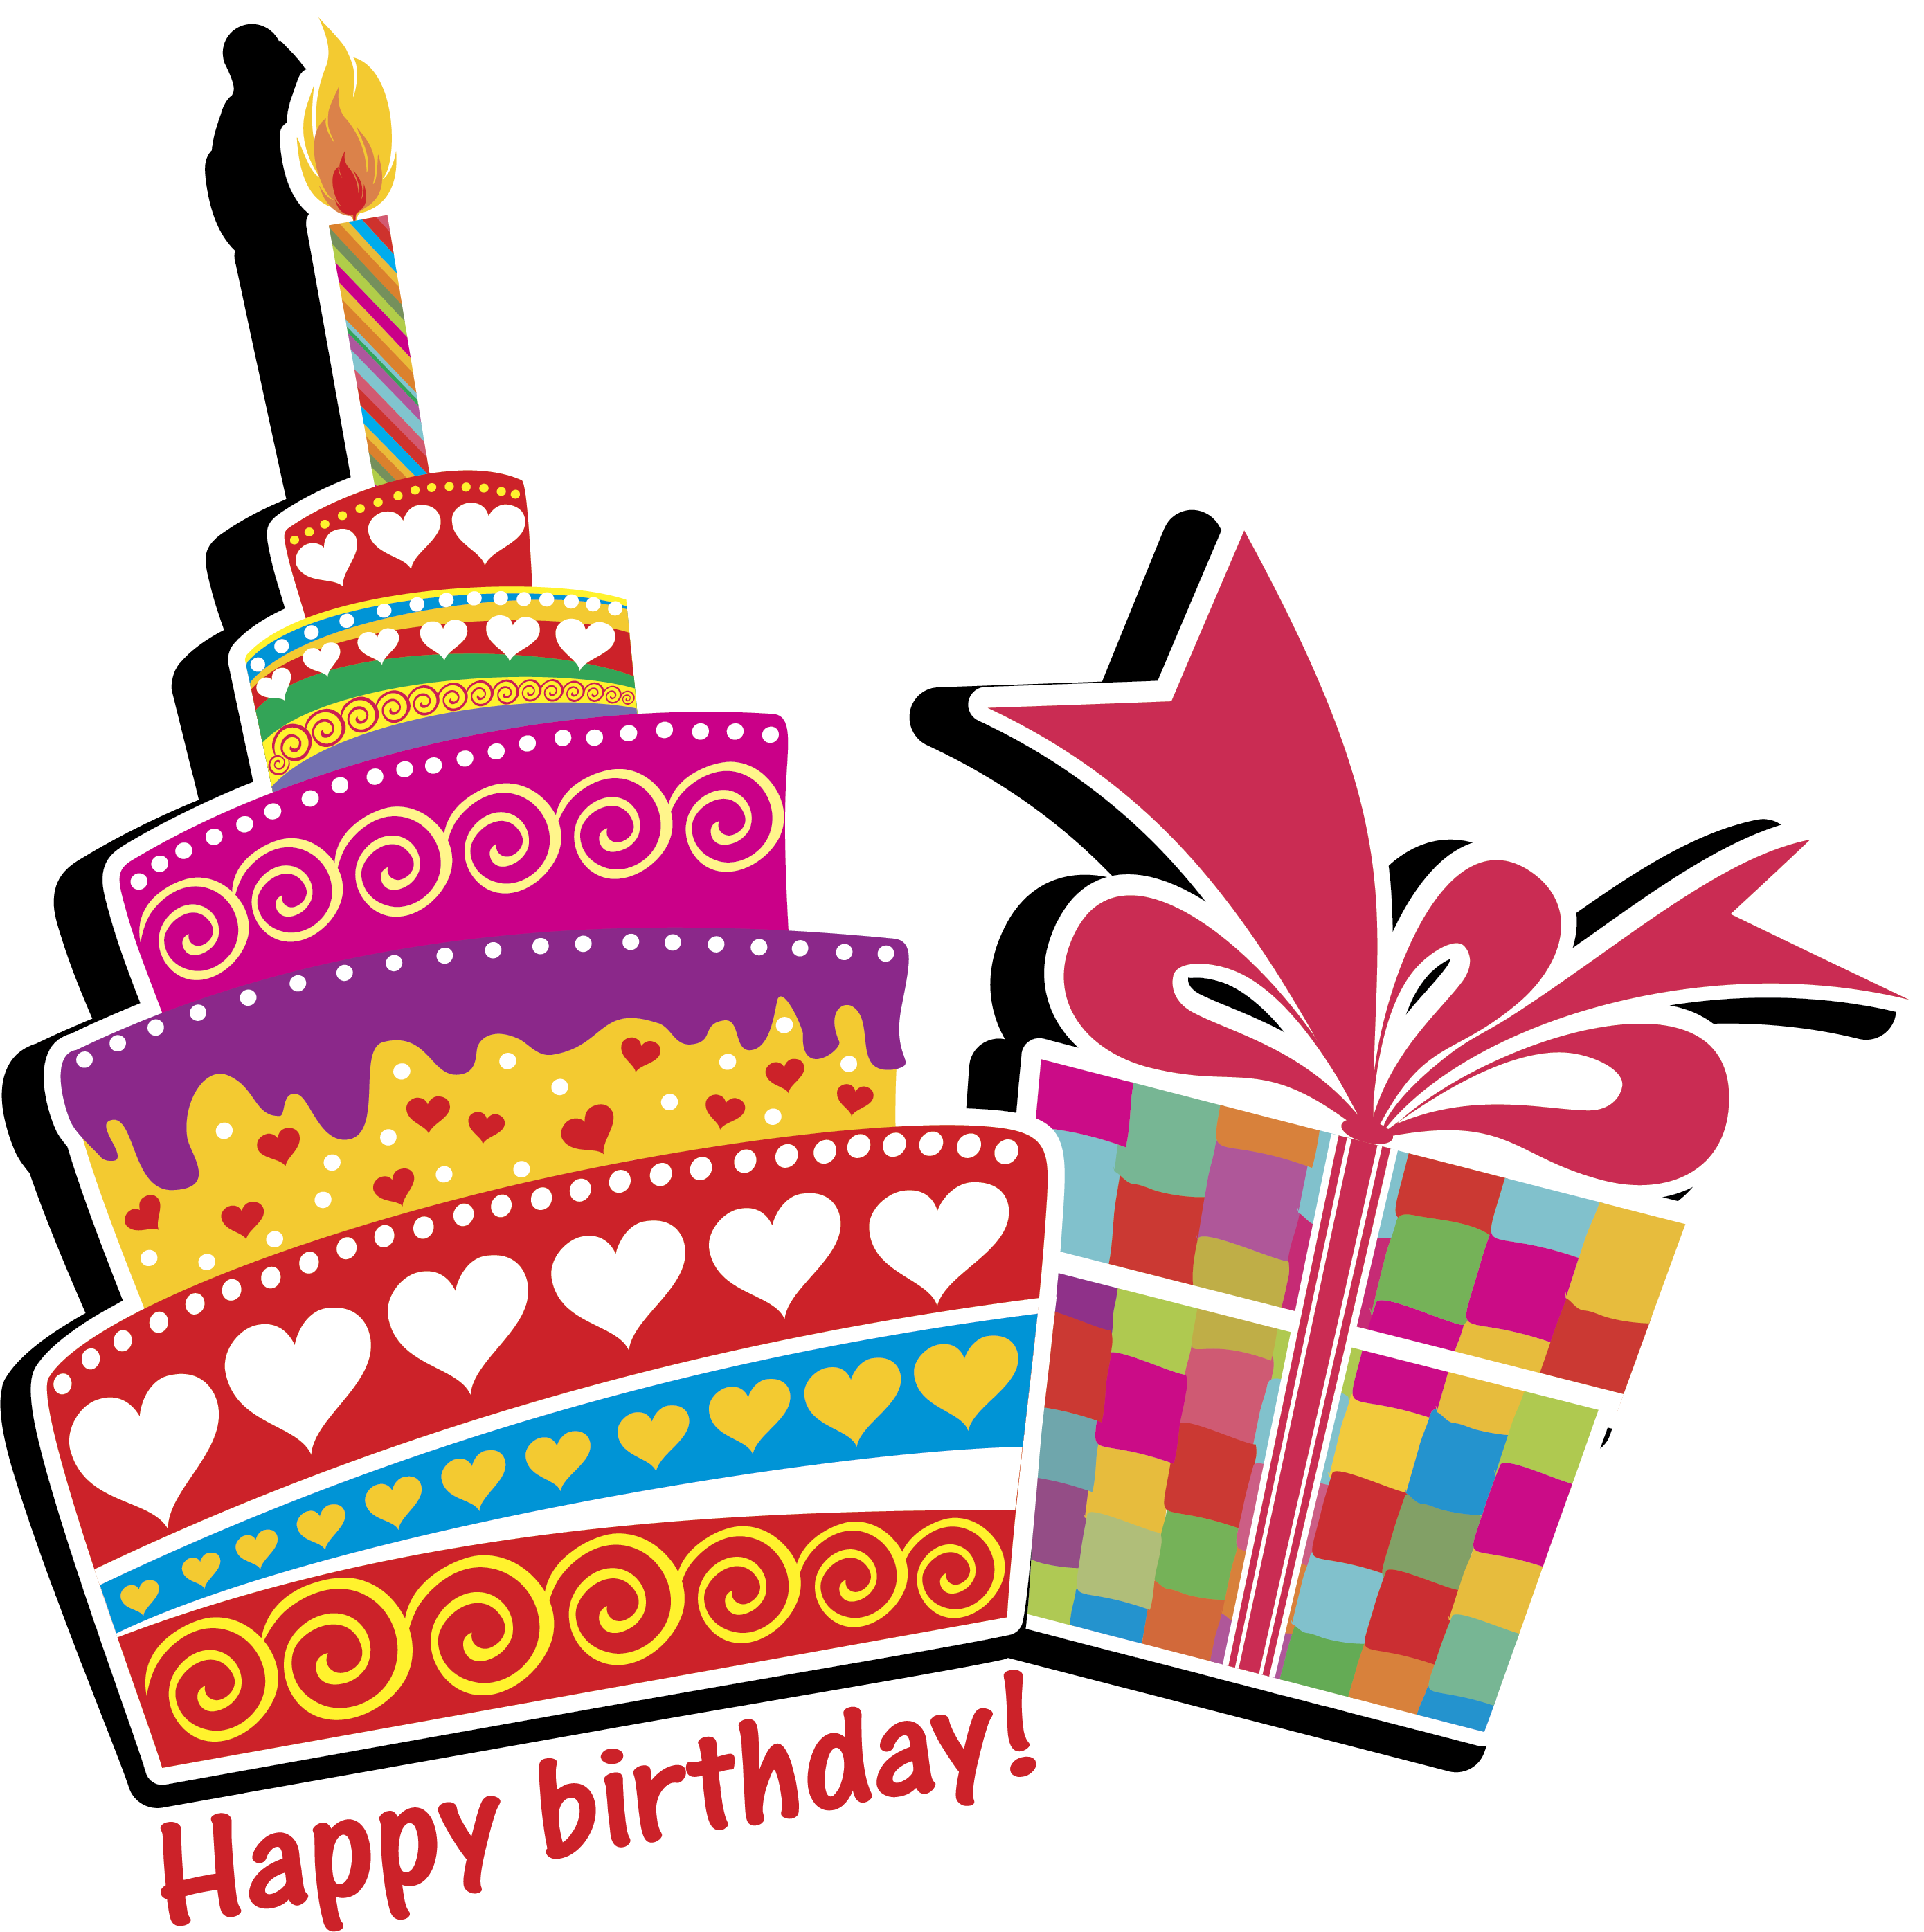 Birthday images png. Happy banner transparent all